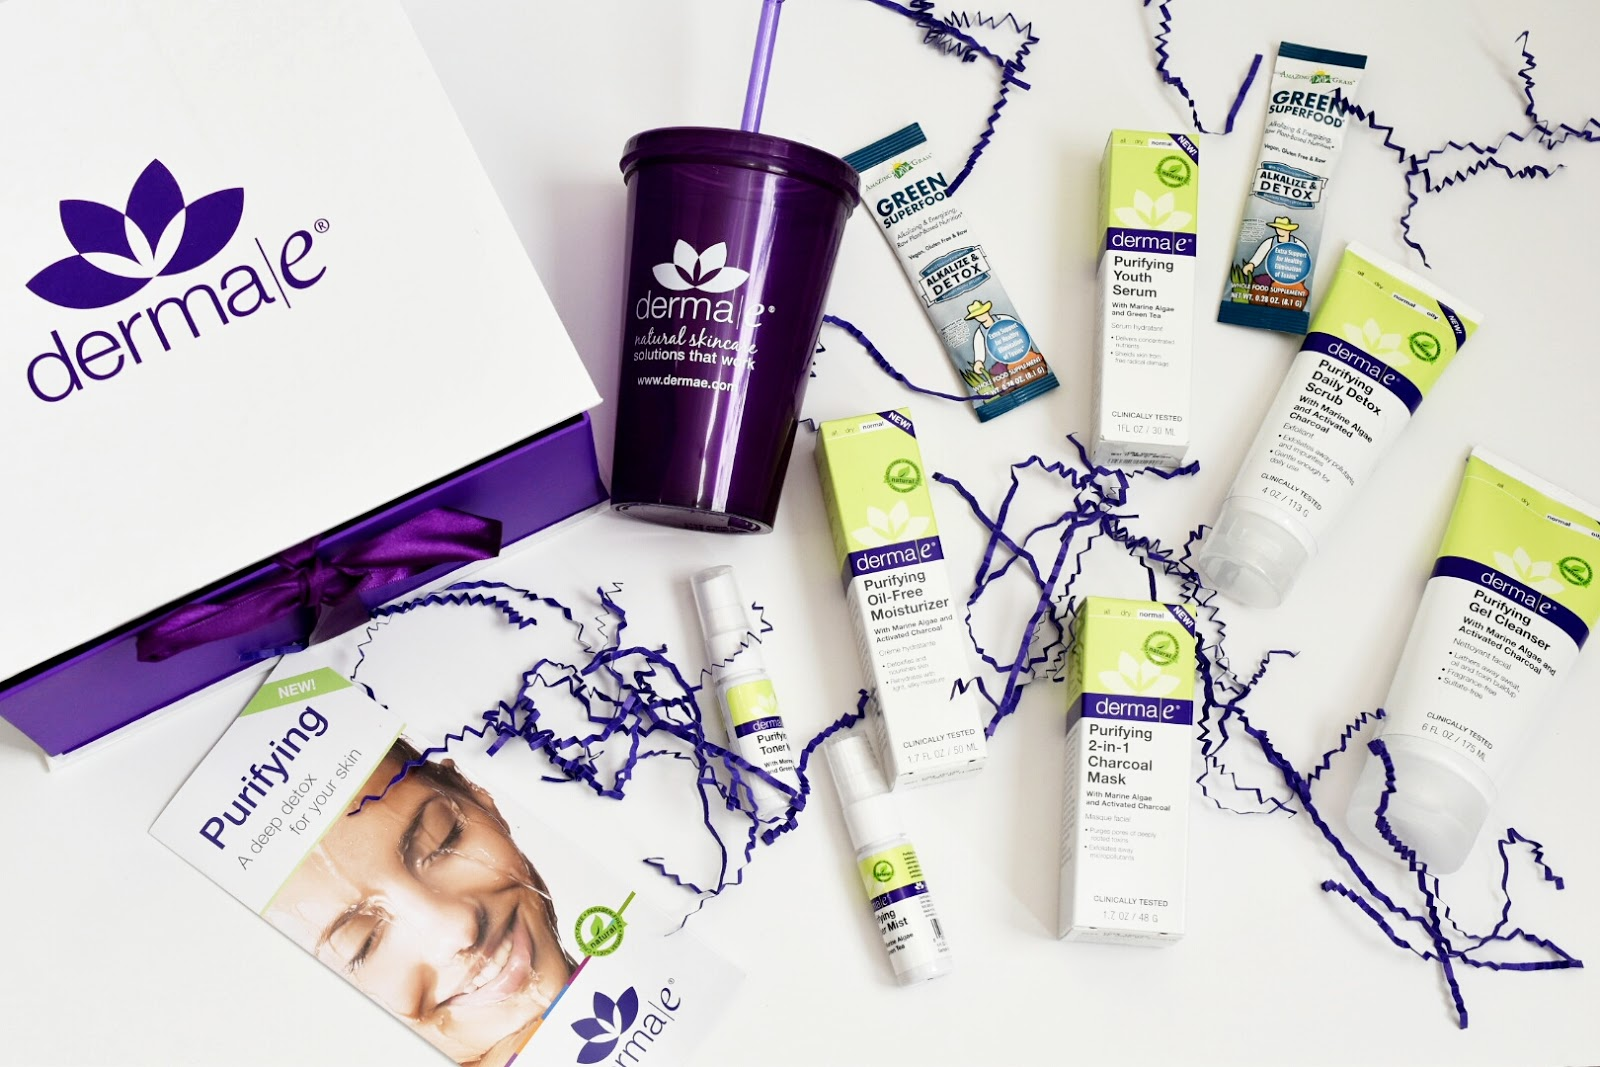 Unboxing of derma e Purifying Skin Care Line  via  www.productreviewmom.com